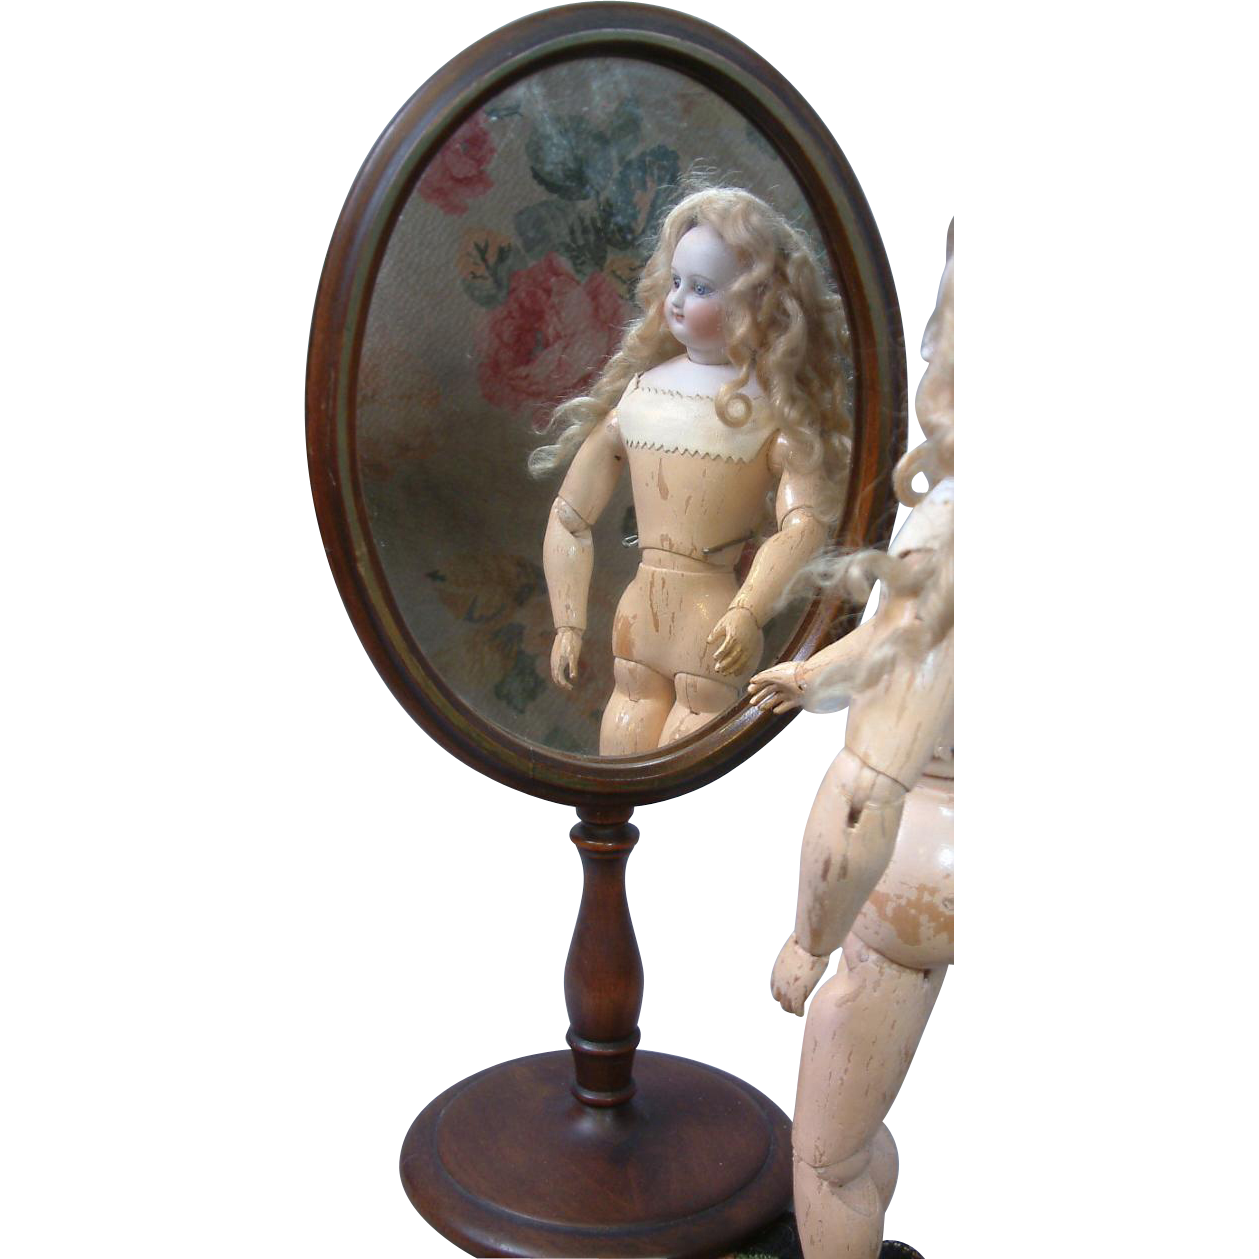 Superb Victorian Carved  Mahogany Psyche Mirror In Perfect Scale for Doll Display!